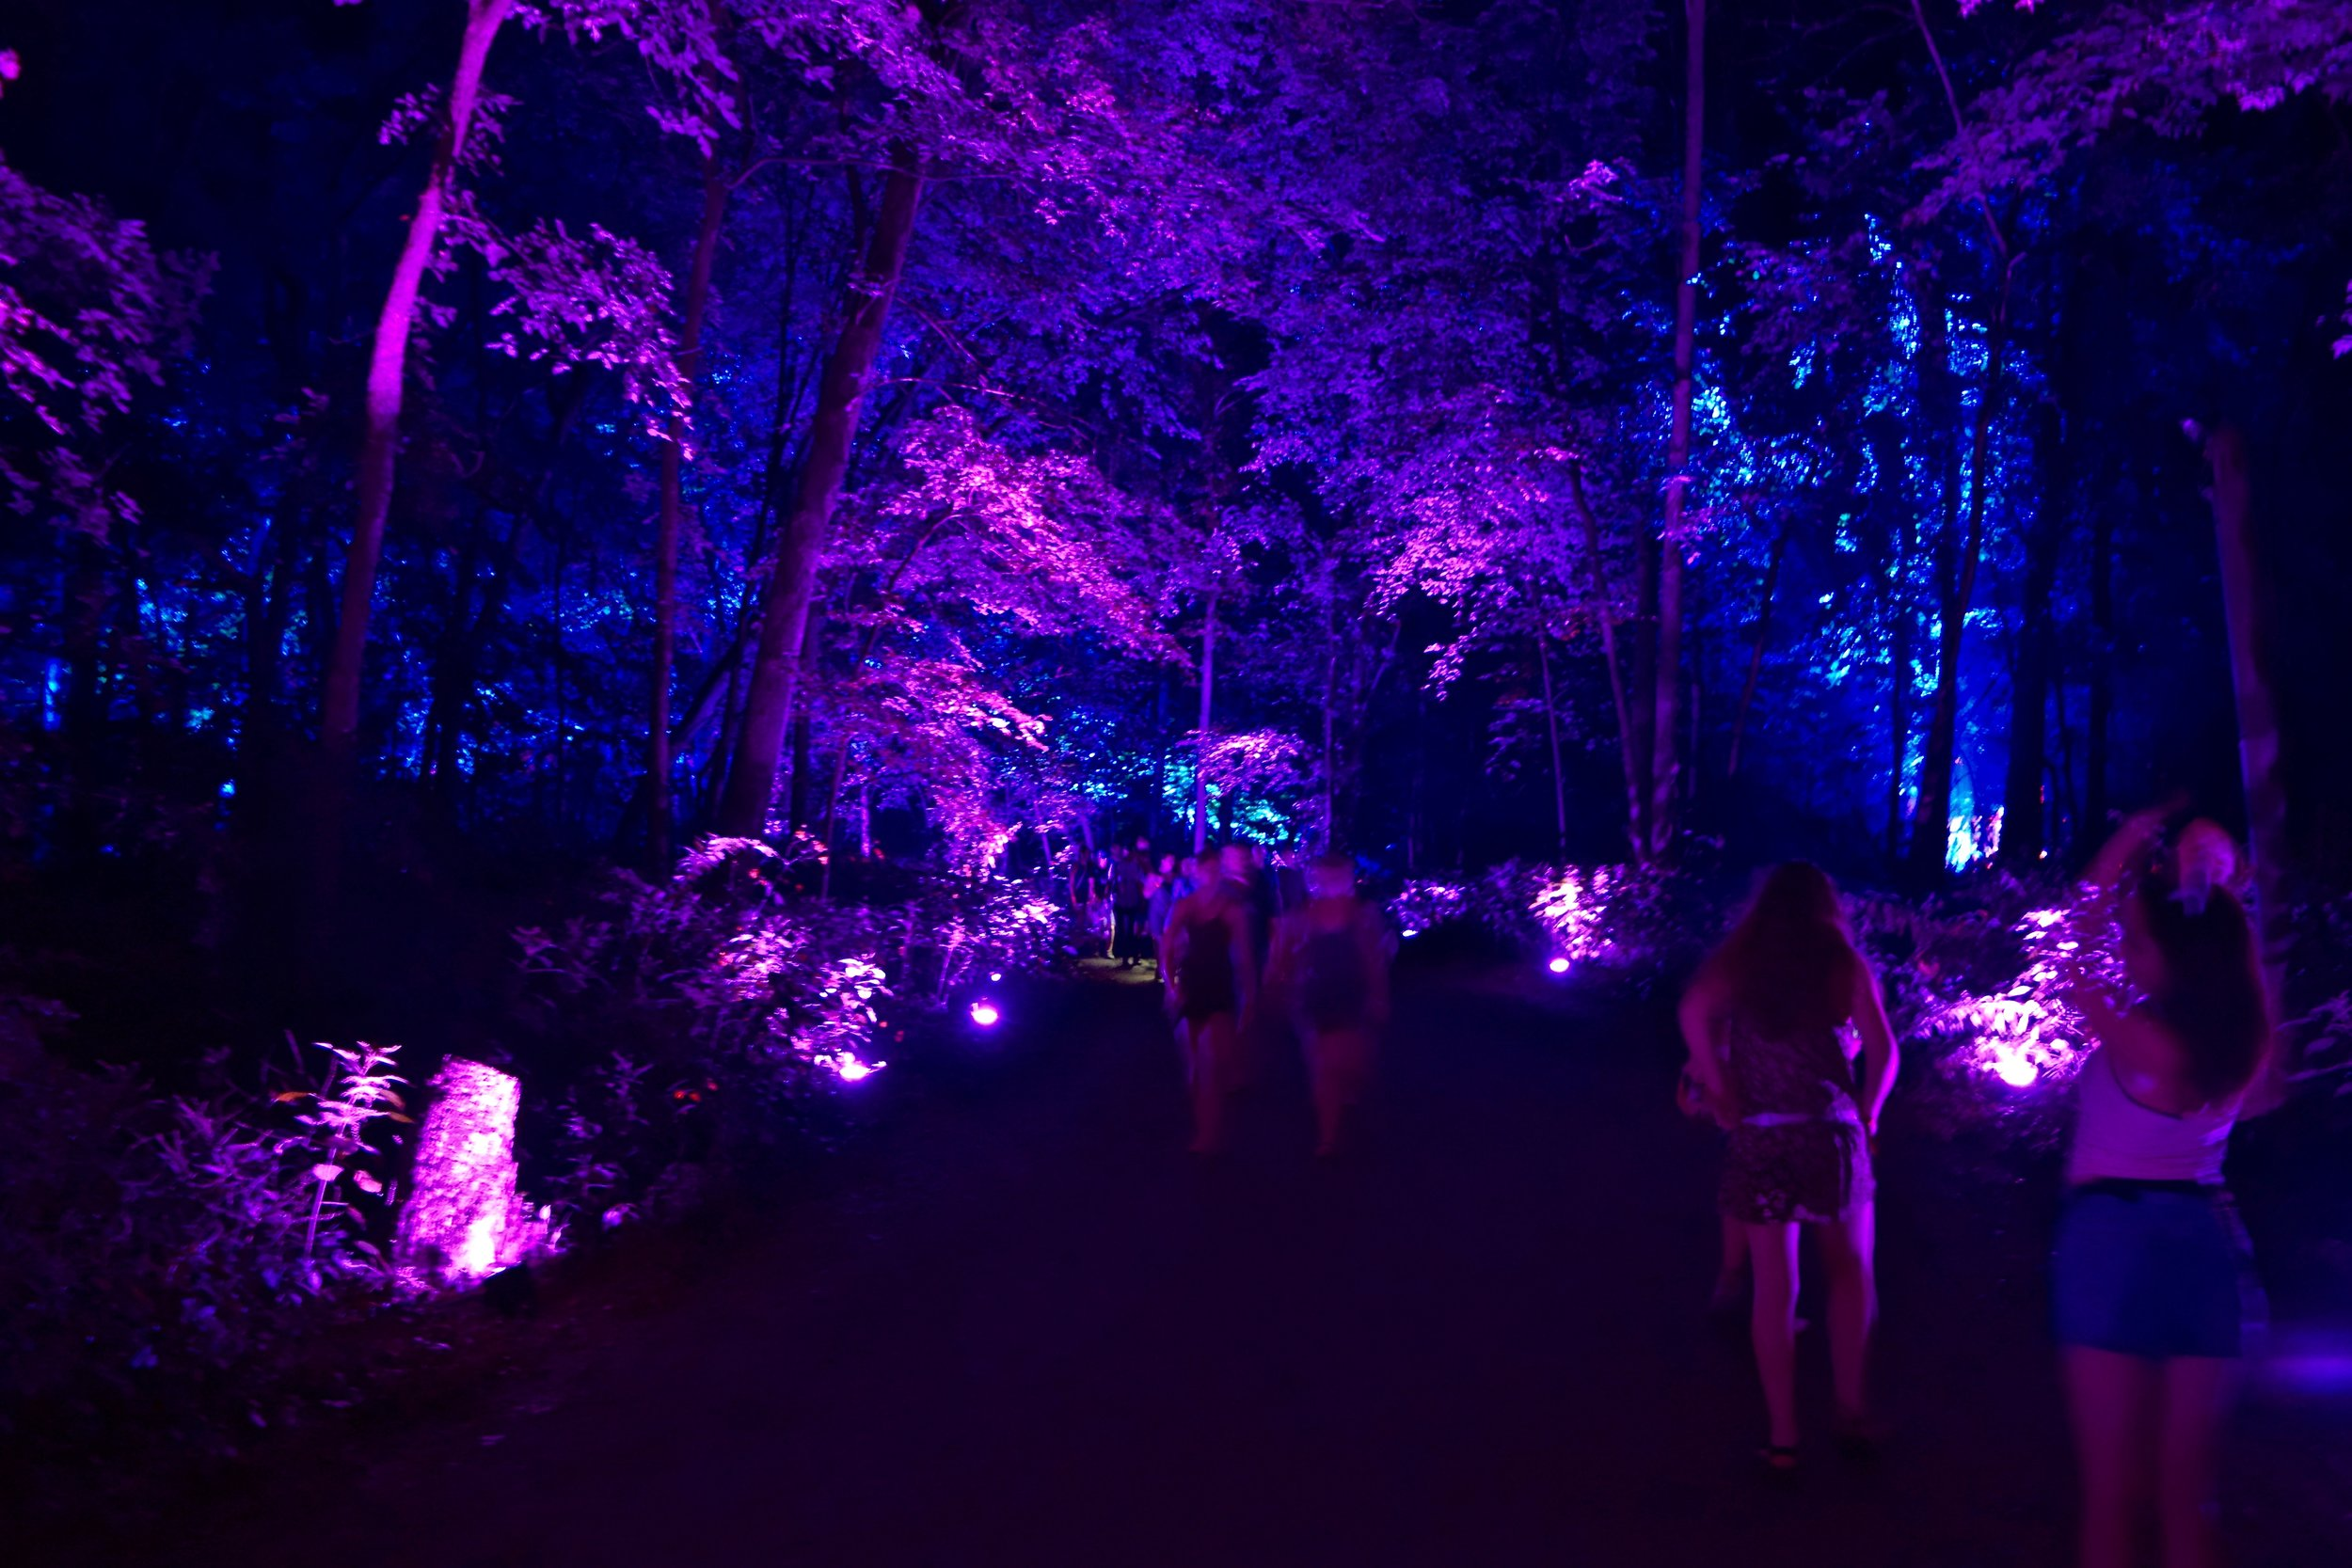 An enchanted forest lights up nightfall at Eaux Claires 2016, photograph by Anmol Gupta